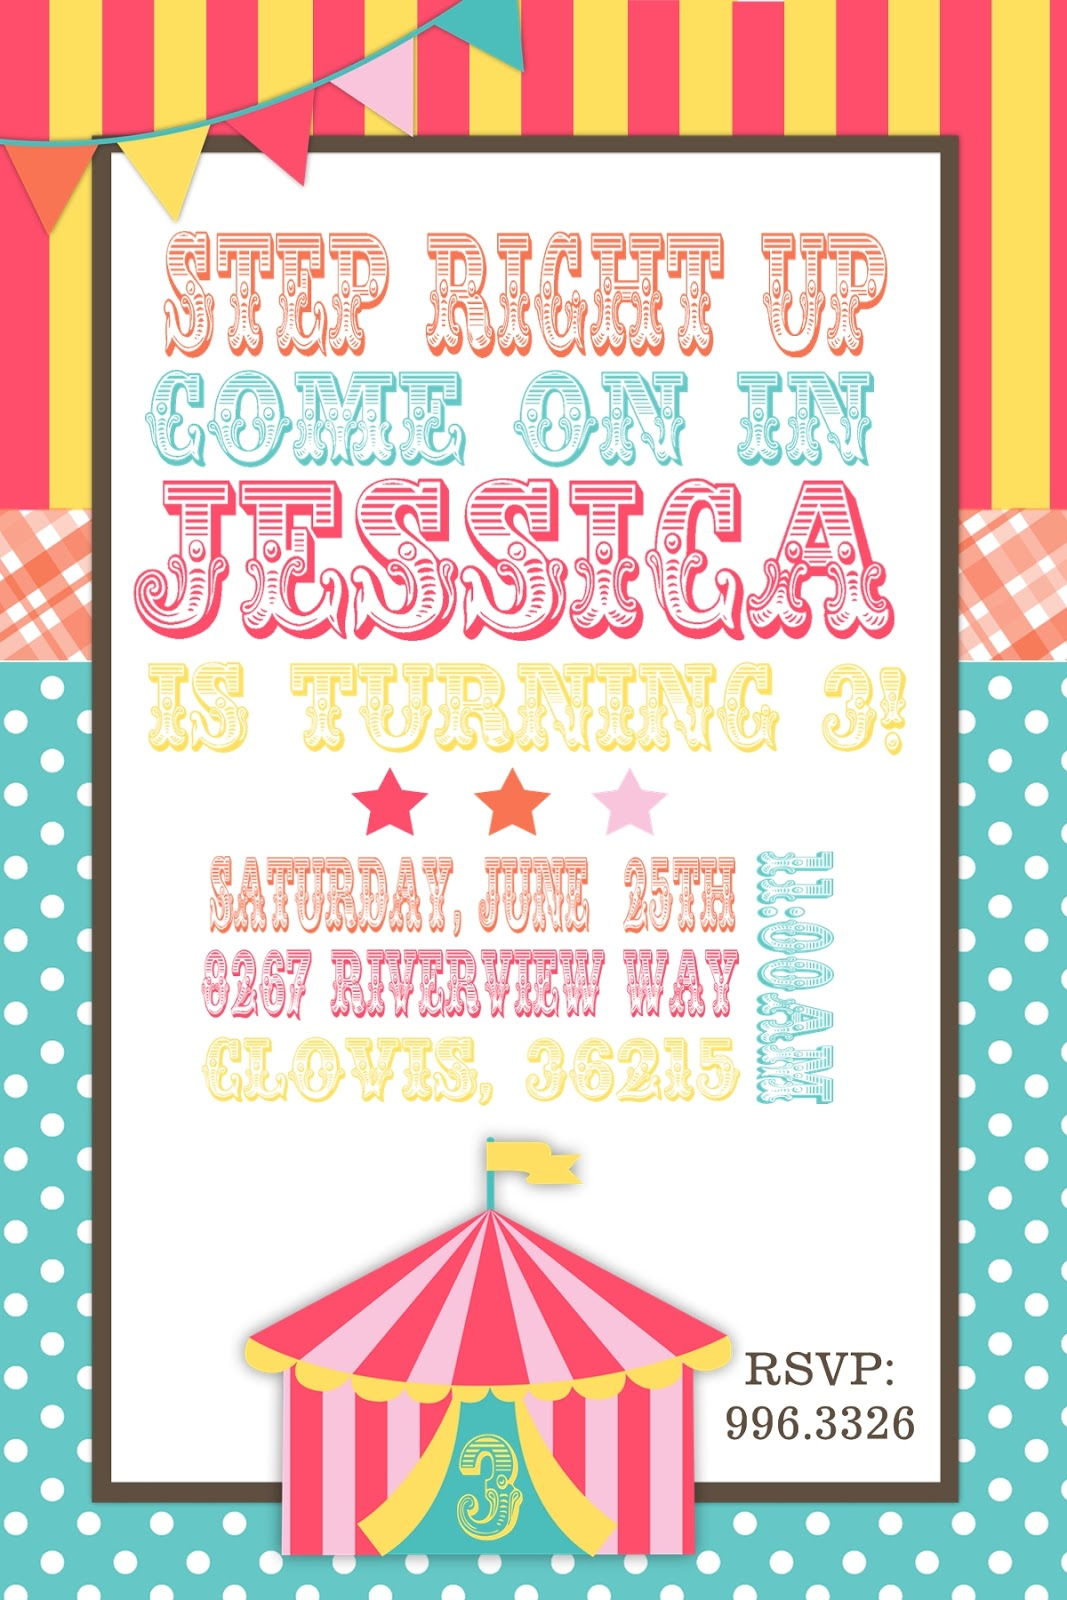 Vintage Birthday Invitations is an amazing ideas you had to choose for invitation design